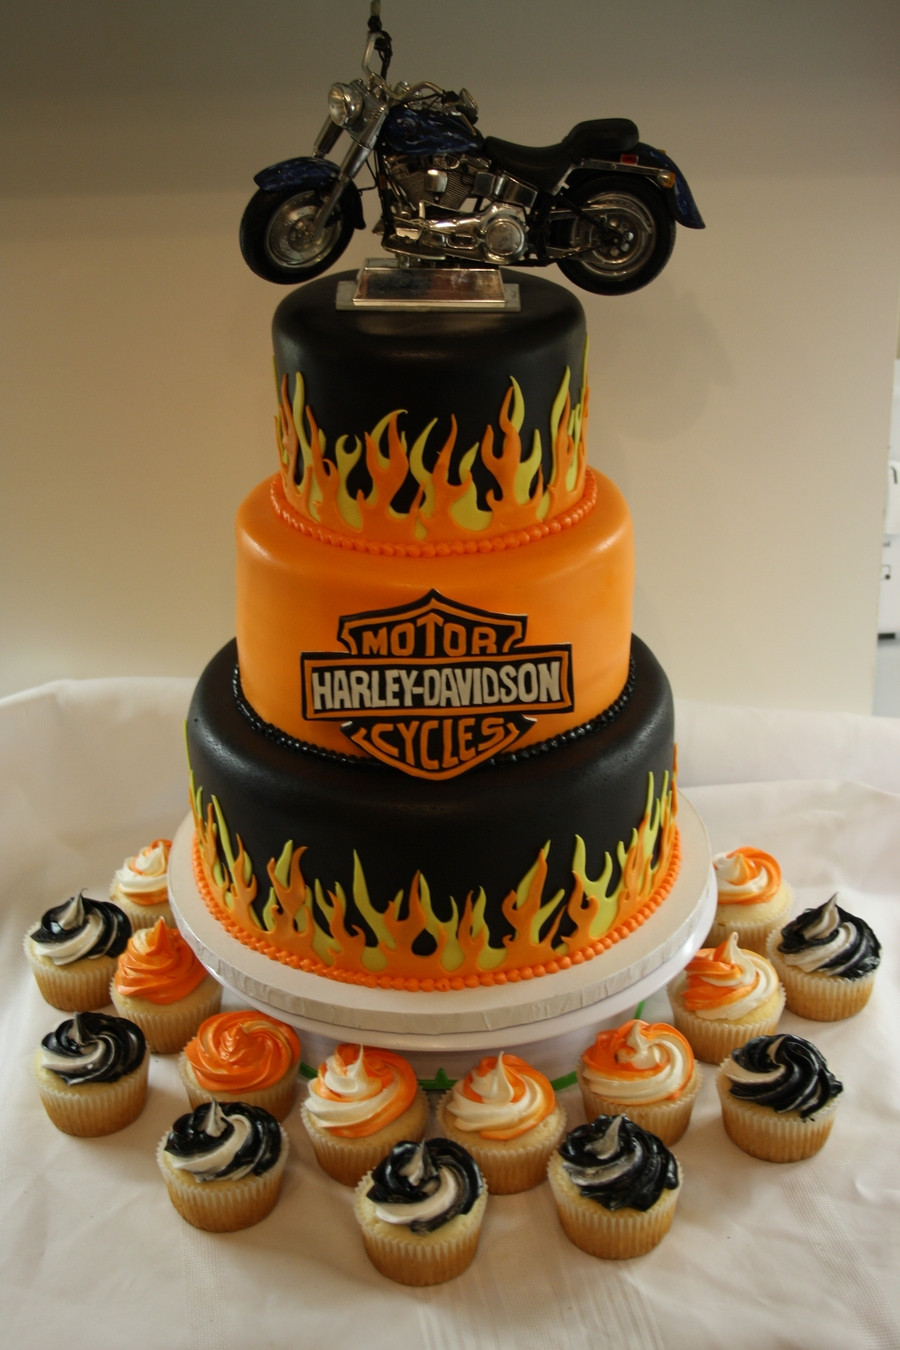 Best ideas about Motorcycle Birthday Cake . Save or Pin 50th Birthday Cake Ideas Now.